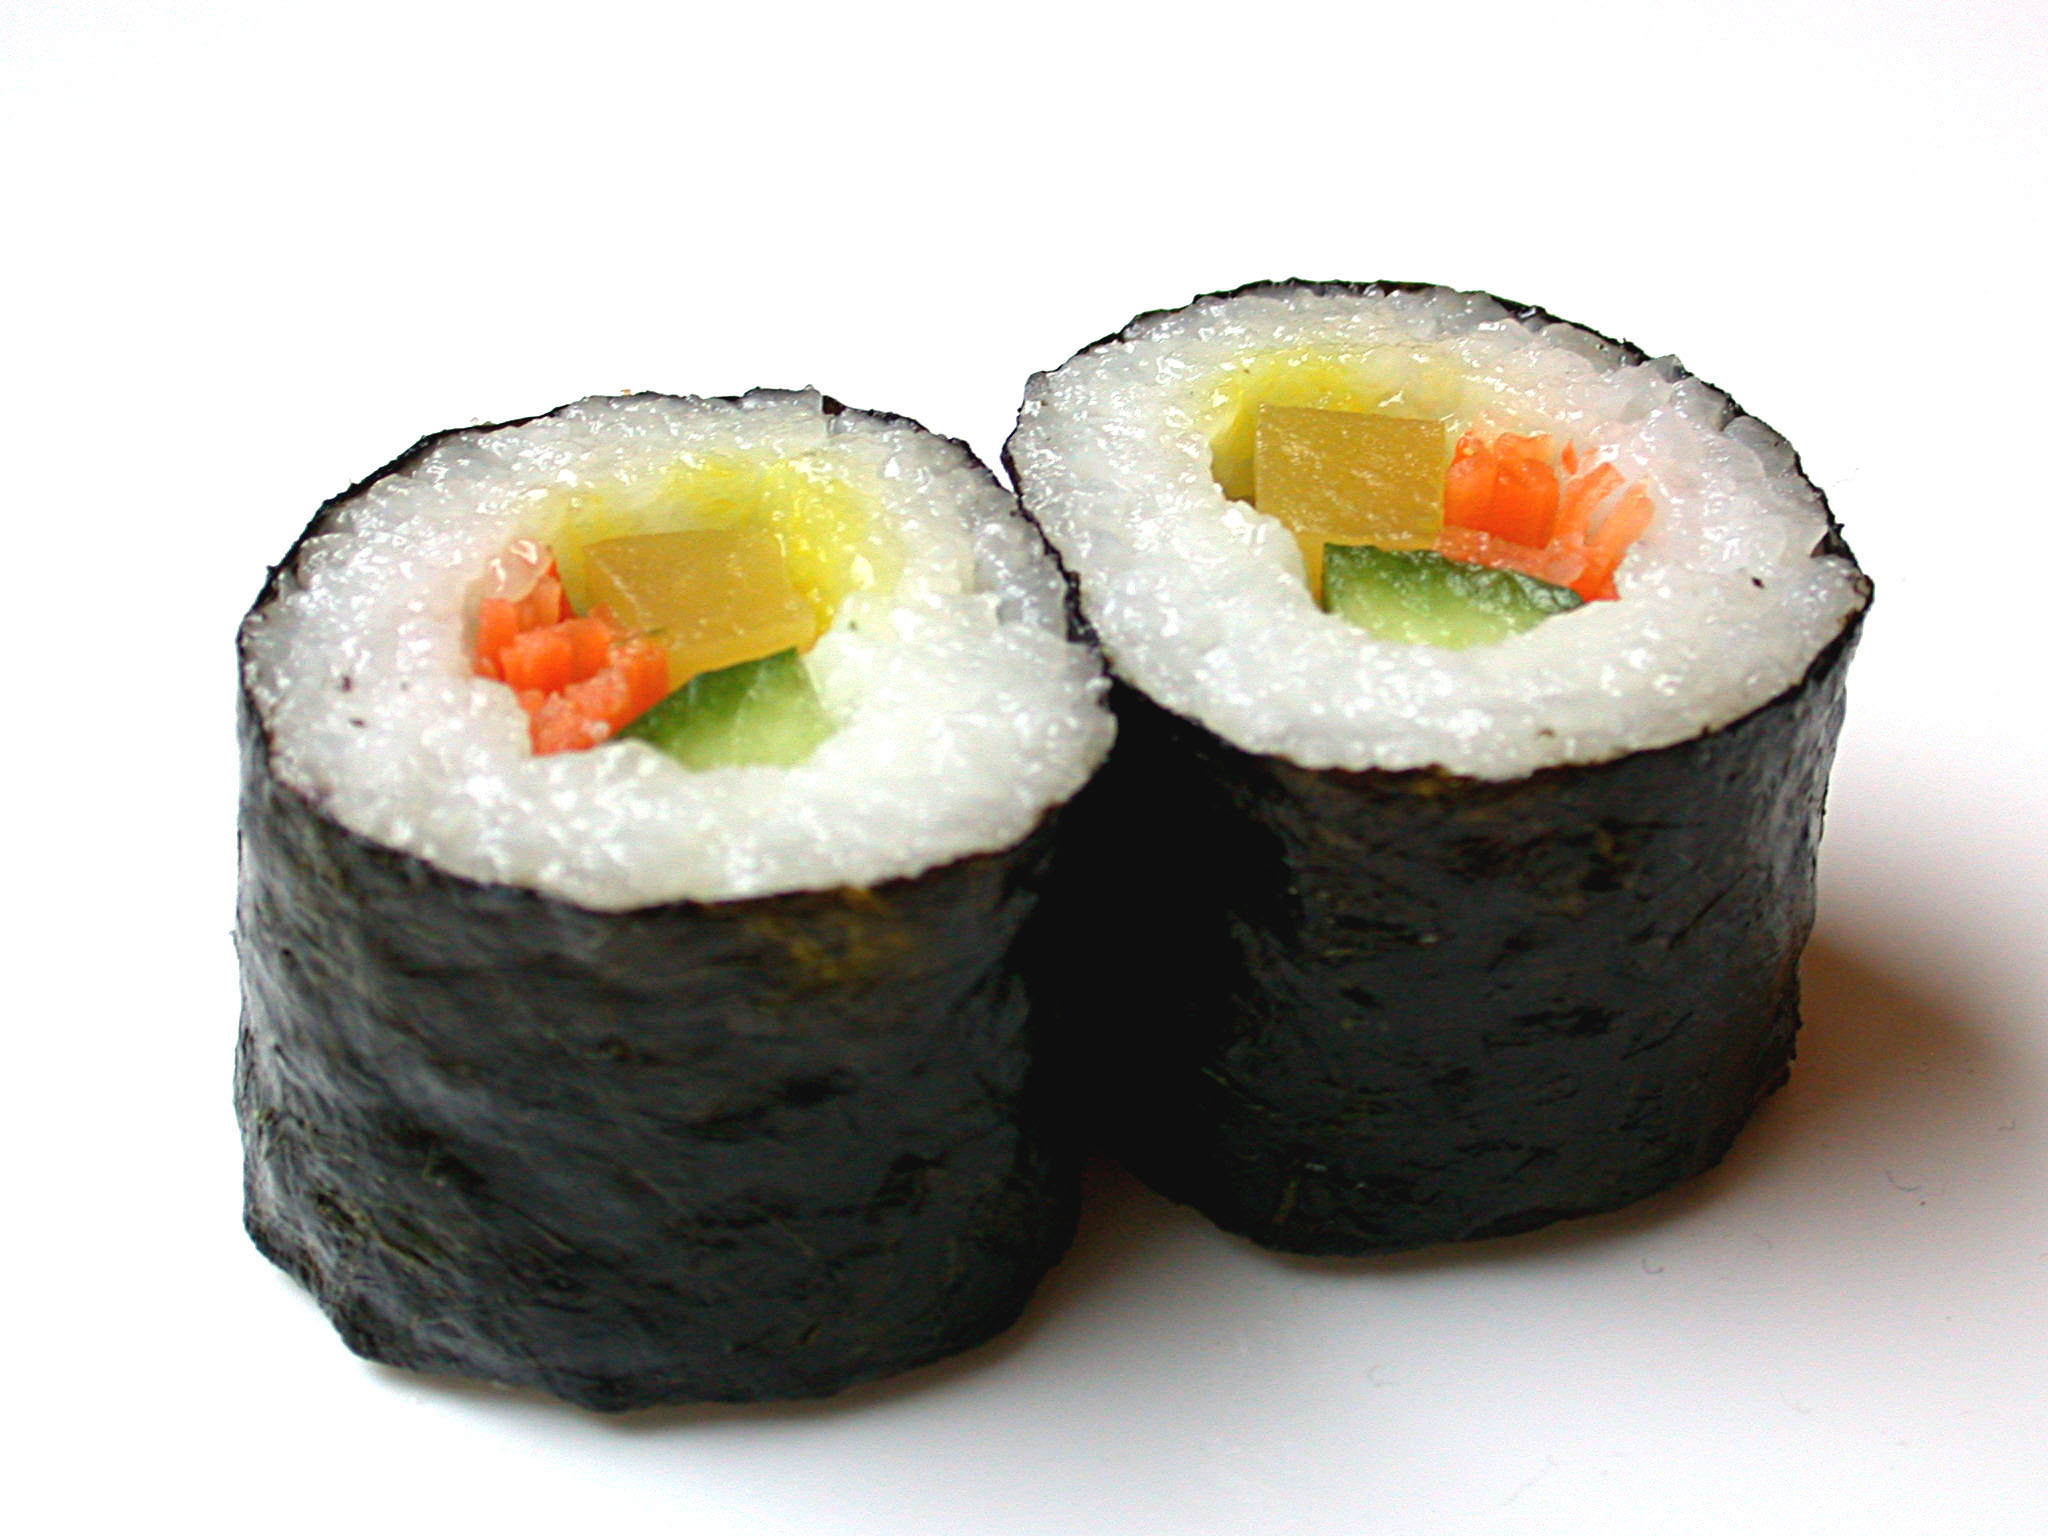 Food free images at vector clip art online for Fish for sushi